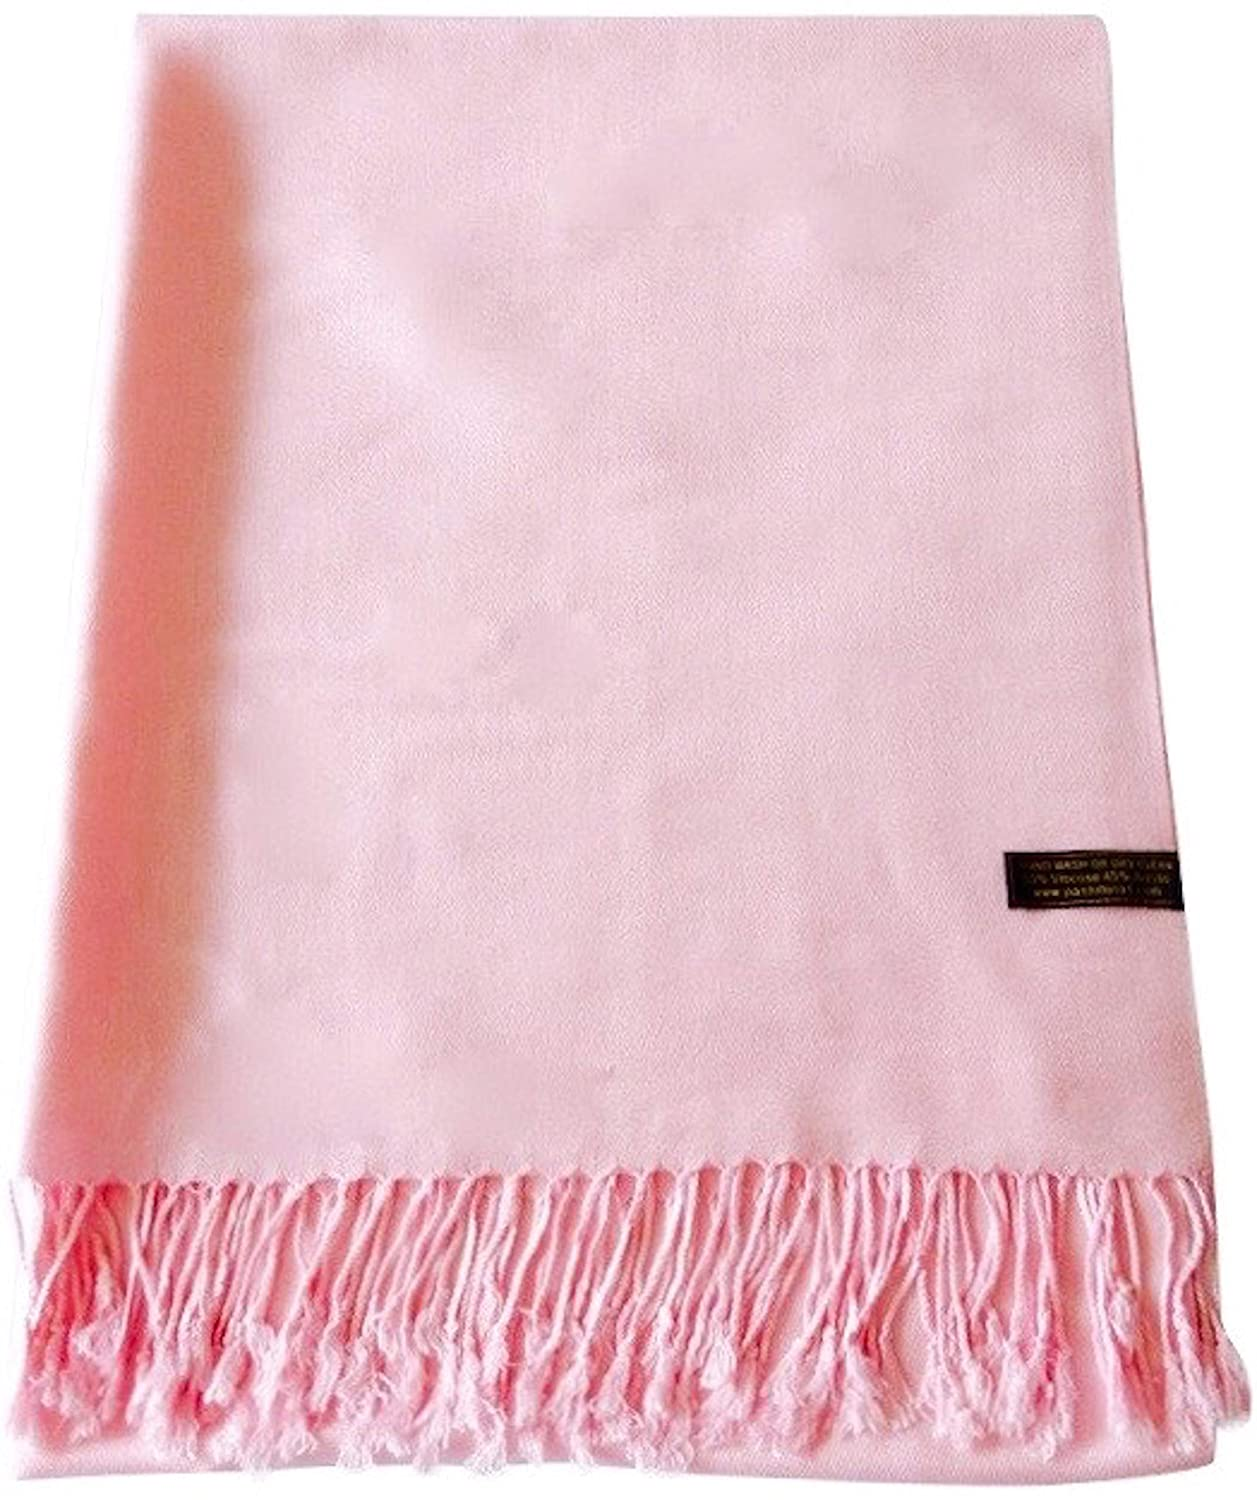 Red Solid Colour Design Shawl Scarf Wrap Stole Throw Pashmina CJ Apparel **NEW**